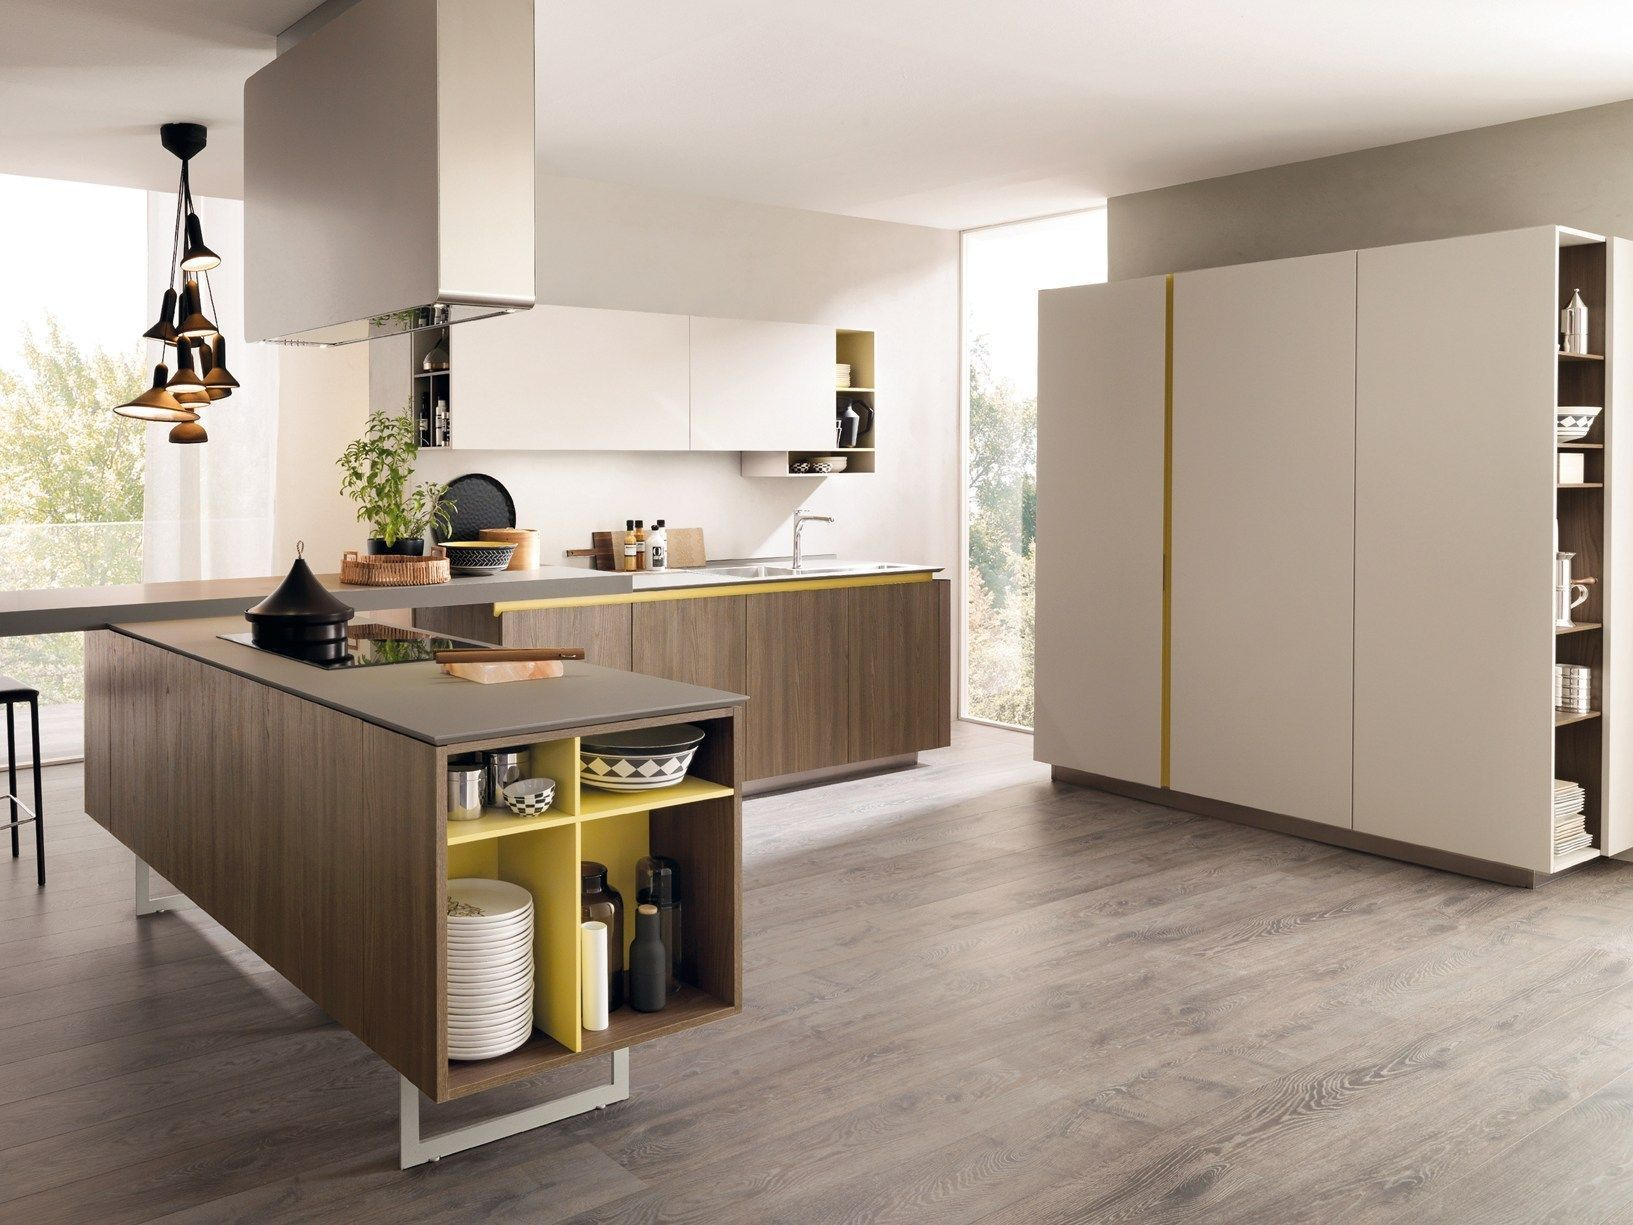 Awesome Eco Friendly Kitchen Design Suggestions